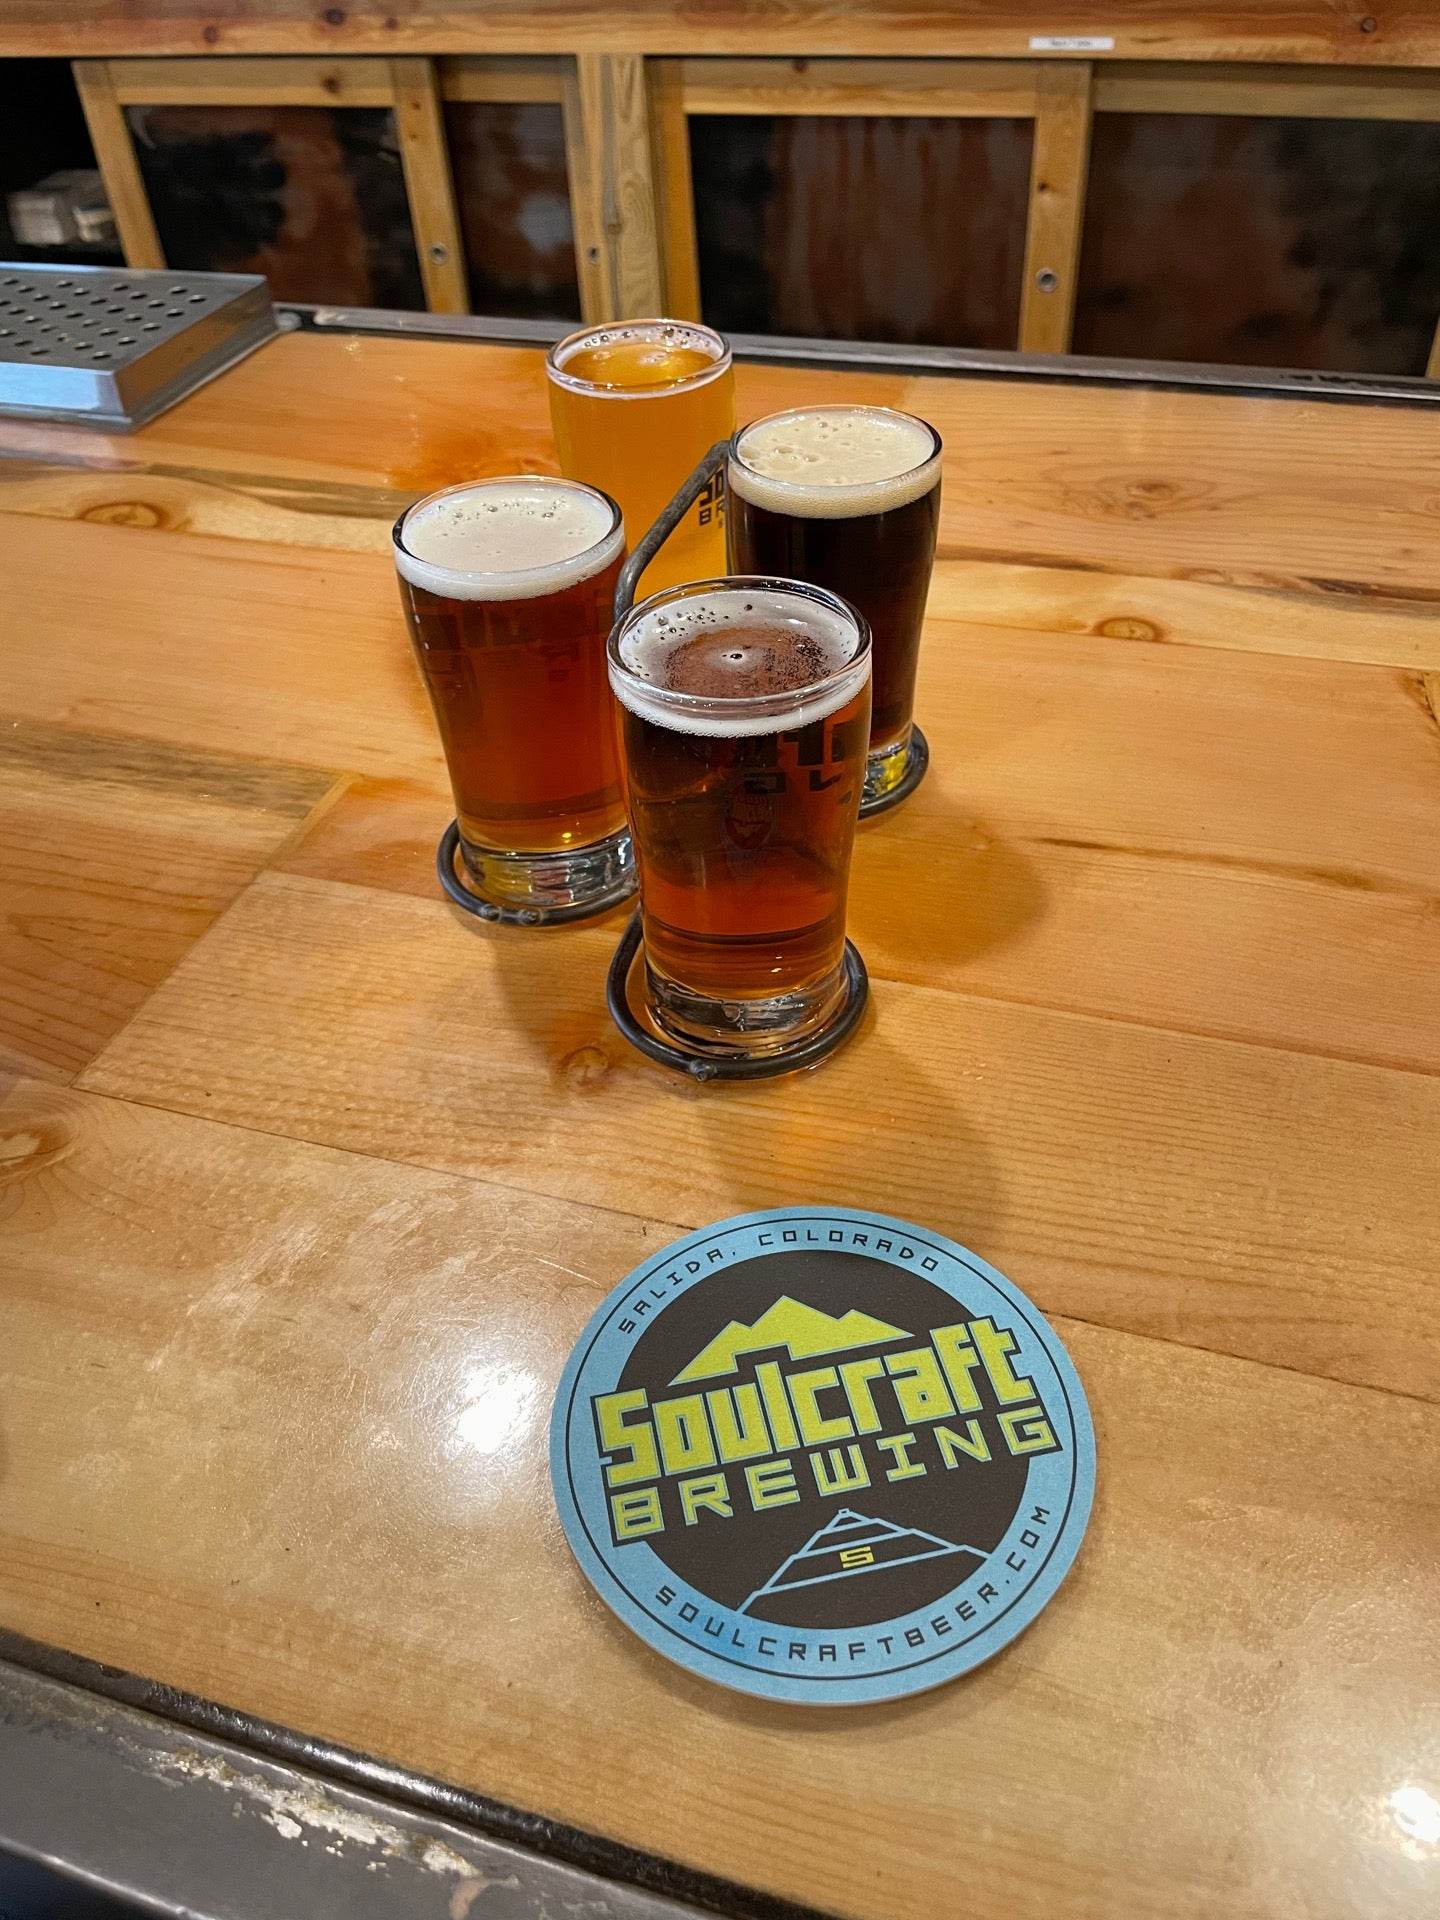 Checked in at Soulcraft Brewing